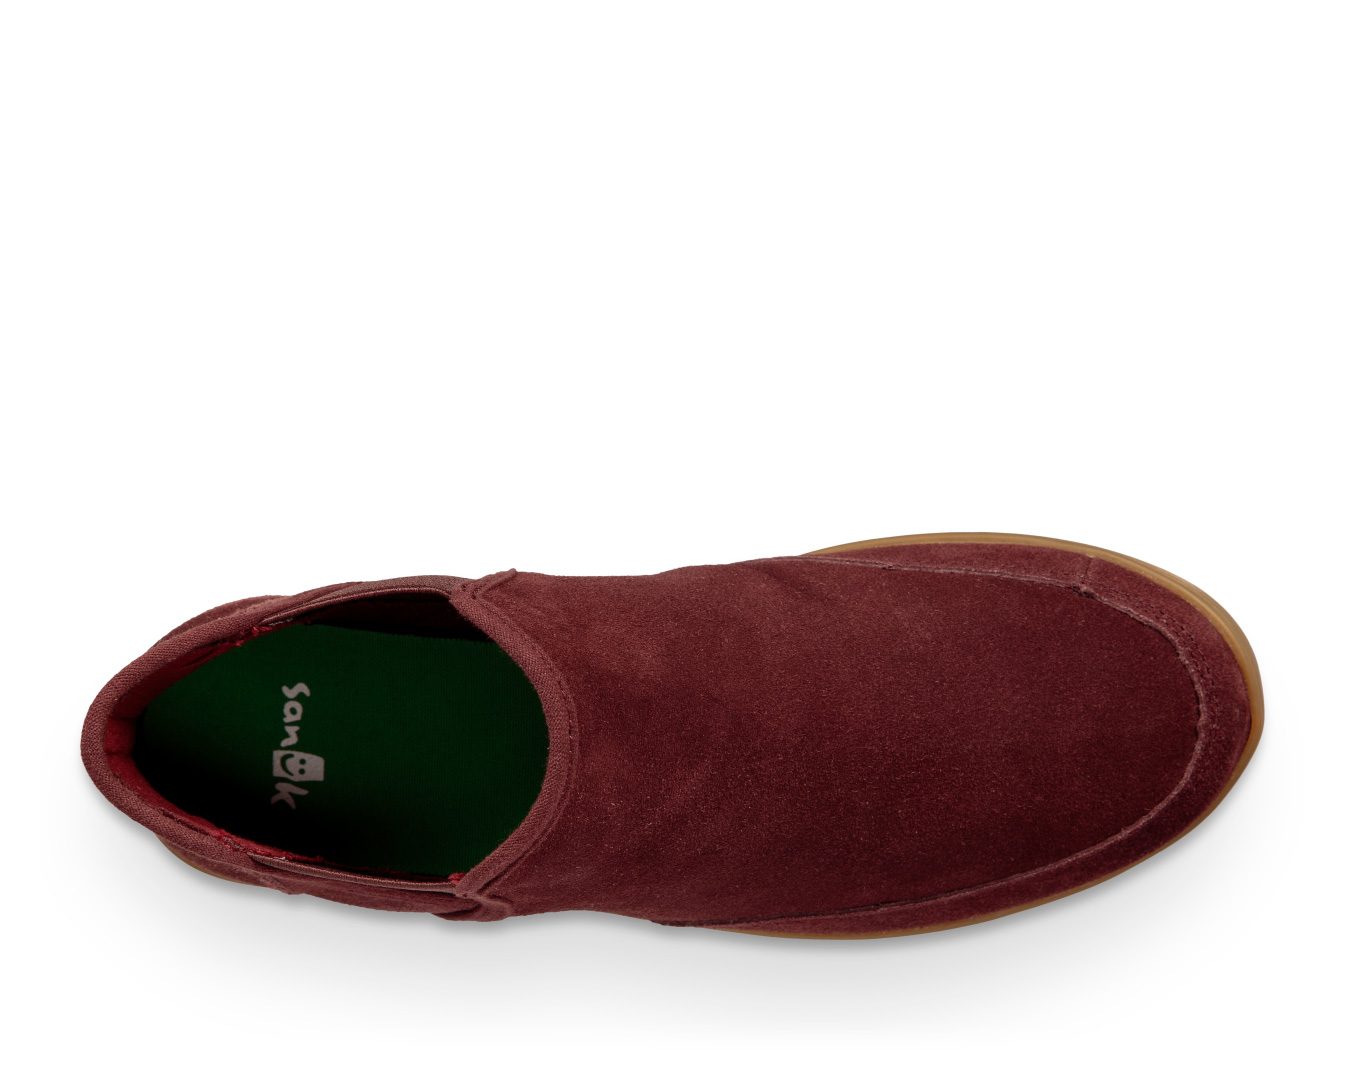 Pair O Dice Mid Suede Alternative View